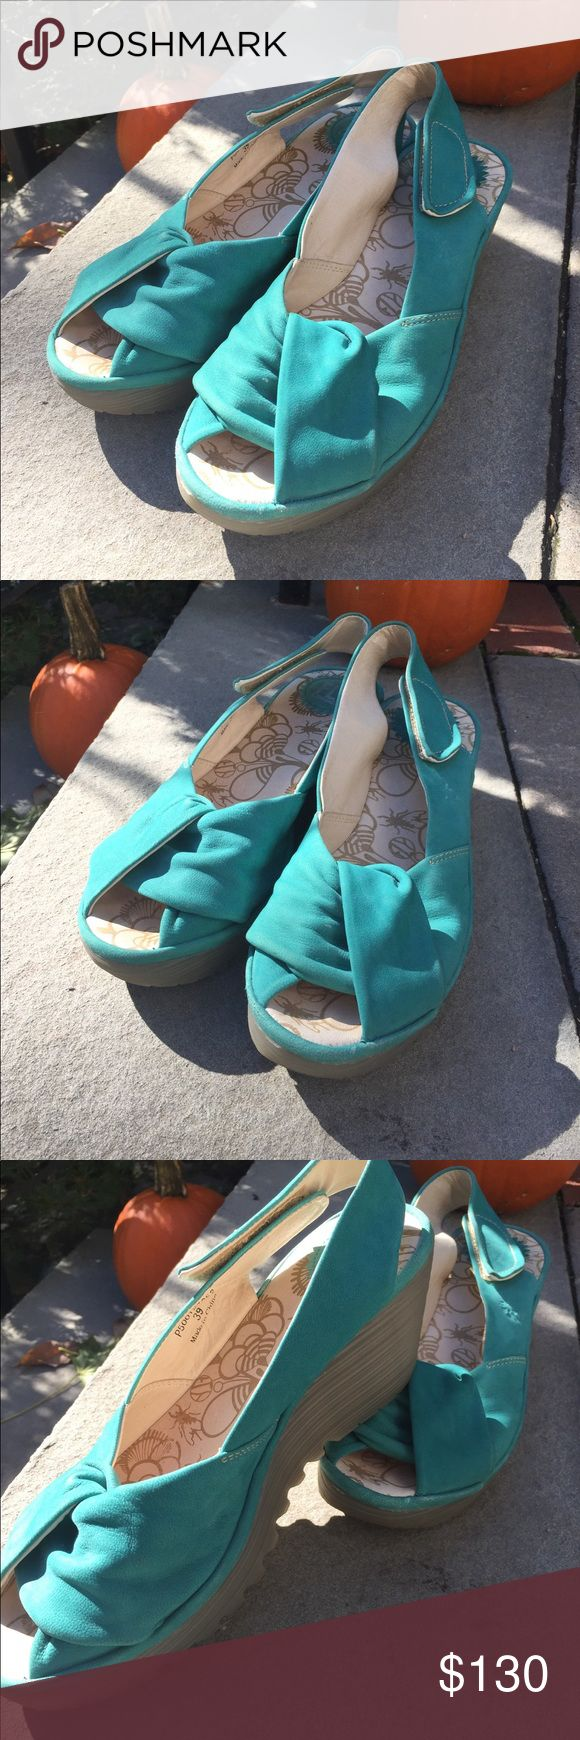 Fly London Turquoise Sandals Size 9. Euro 39. Worn on a few times. Suede sandals with a rubber platform. Fly London. Size 9. Euro 39. Fly London Shoes Sandals